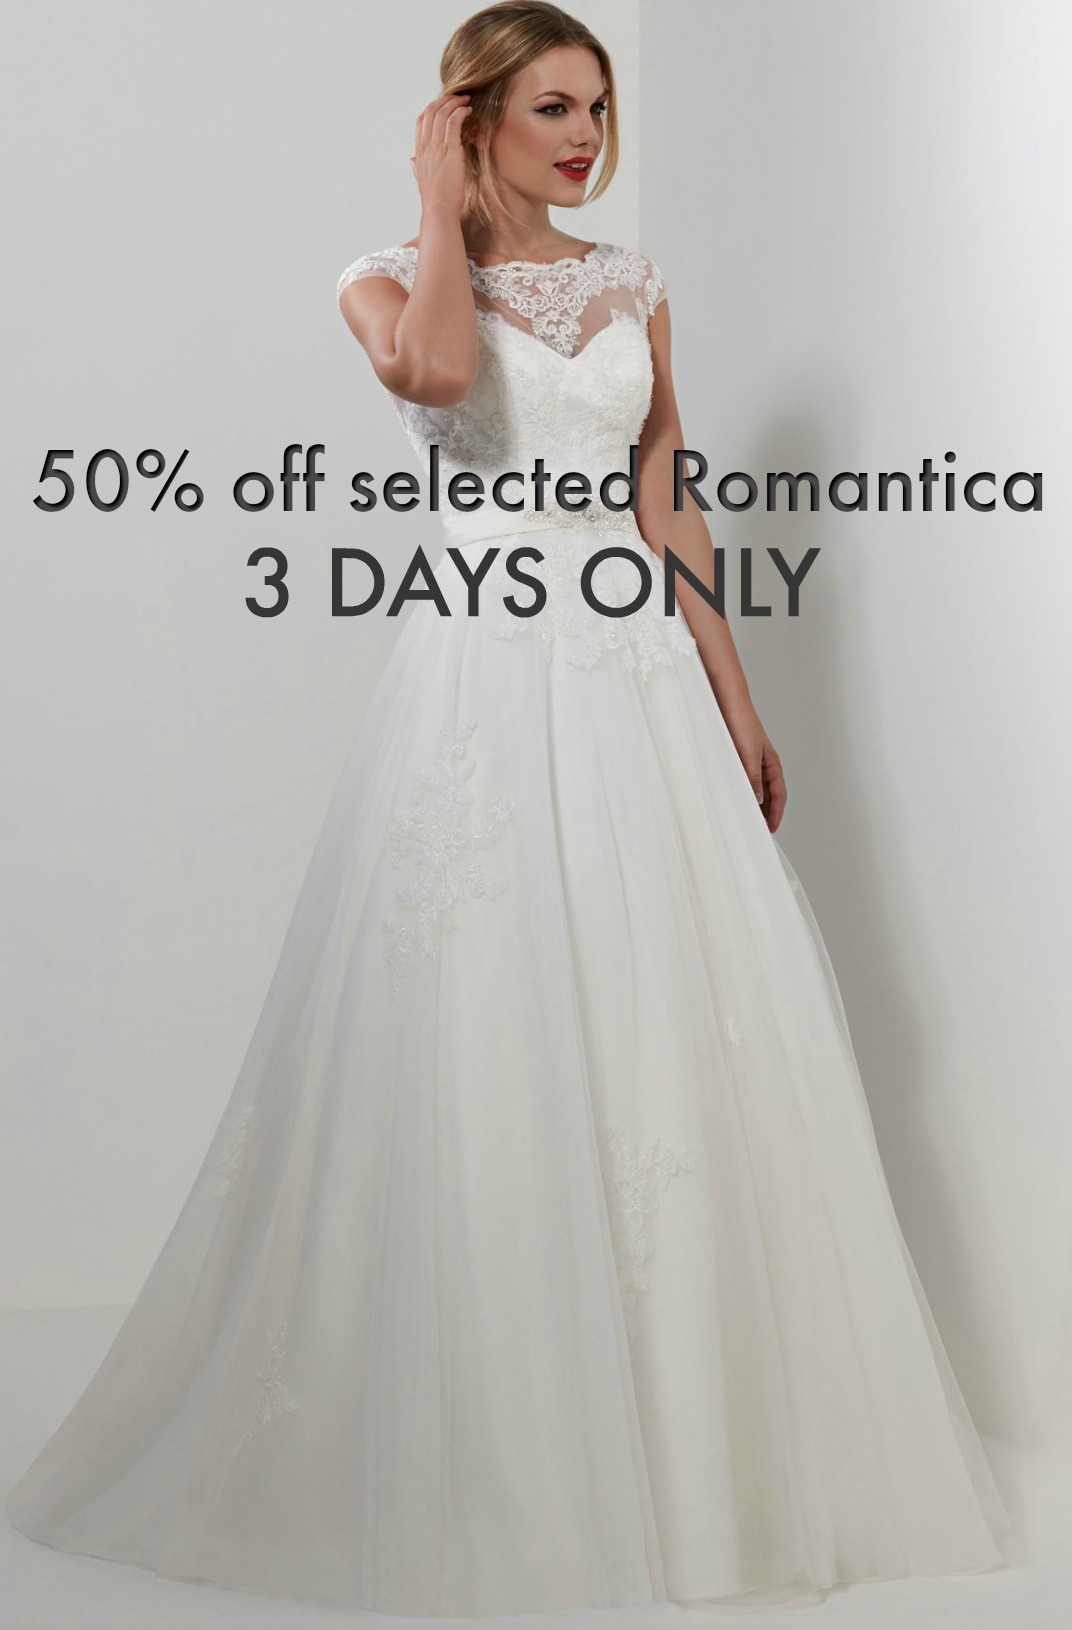 Romantica genuine designer ex-sample wedding dress size uk 12 gown.